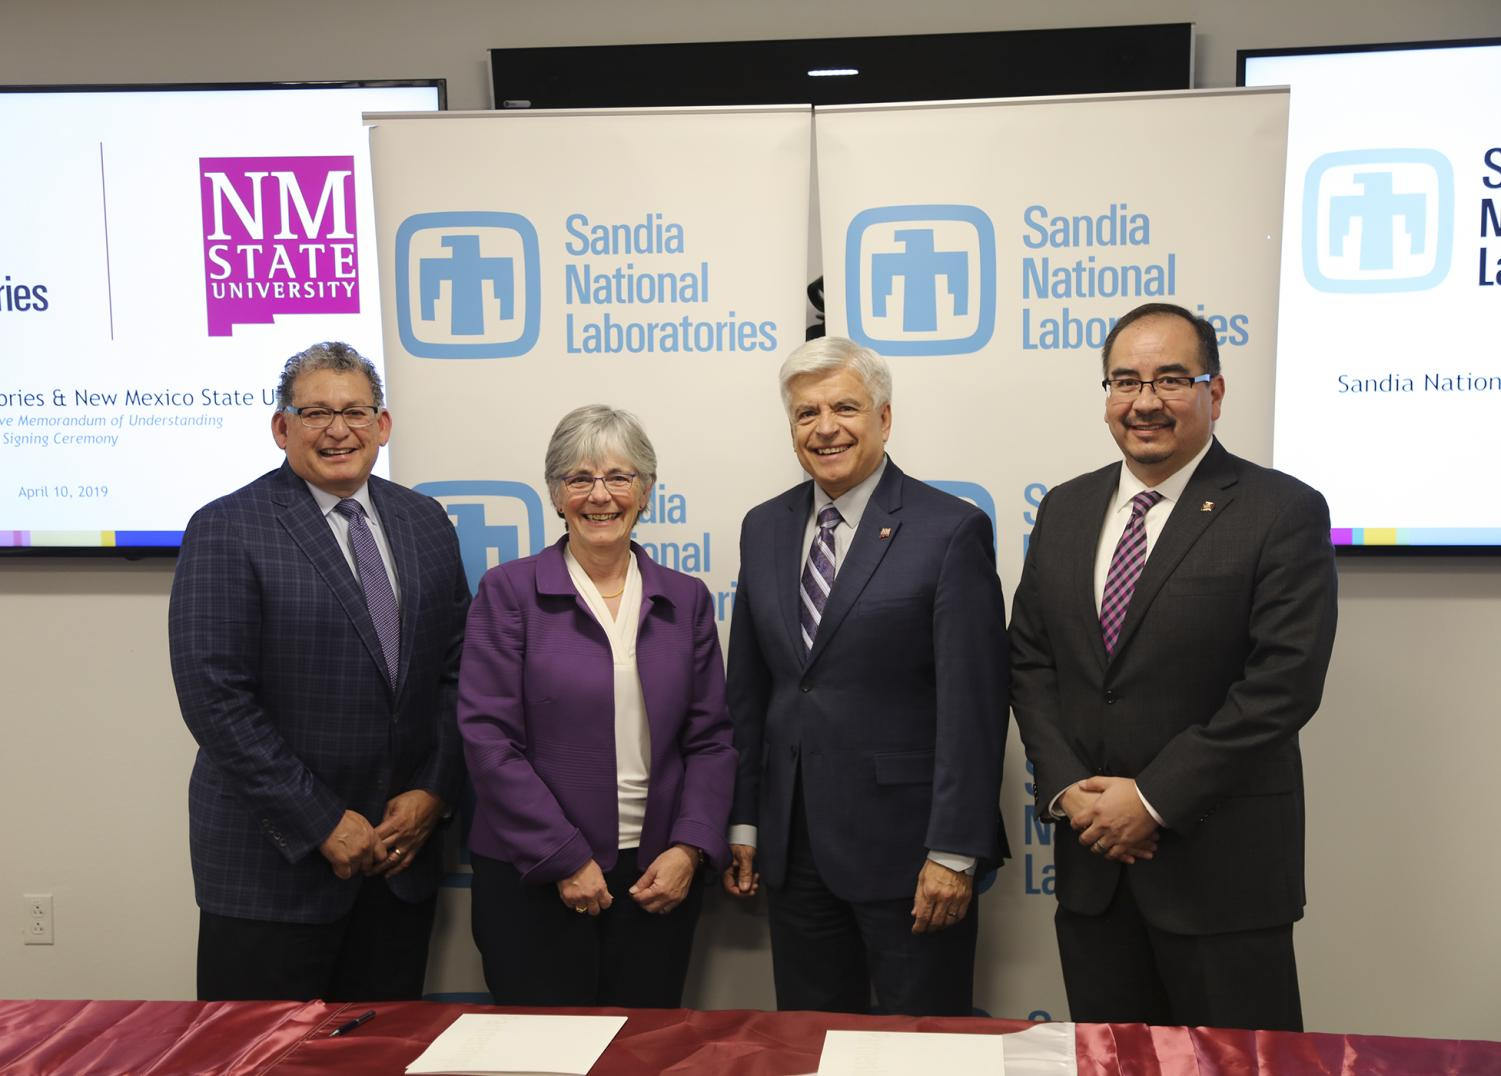 New Mexico State University and Sandia National Laboratories signed a 10-year memorandum of understanding April 10 in Albuquerque. From left, Jaime Moya, director of environment, safety and health, Sandia National Laboratories; Susan Seestrom, associate labs director and chief research officer, Sandia National Laboratories; Dan Arvizu, NMSU chancellor; and Dan Sanchez, technology partnerships program manager, National Nuclear Security Administration Sandia Field Office; attend the signing ceremony. (Courtesy photo by Lonnie Anderson)